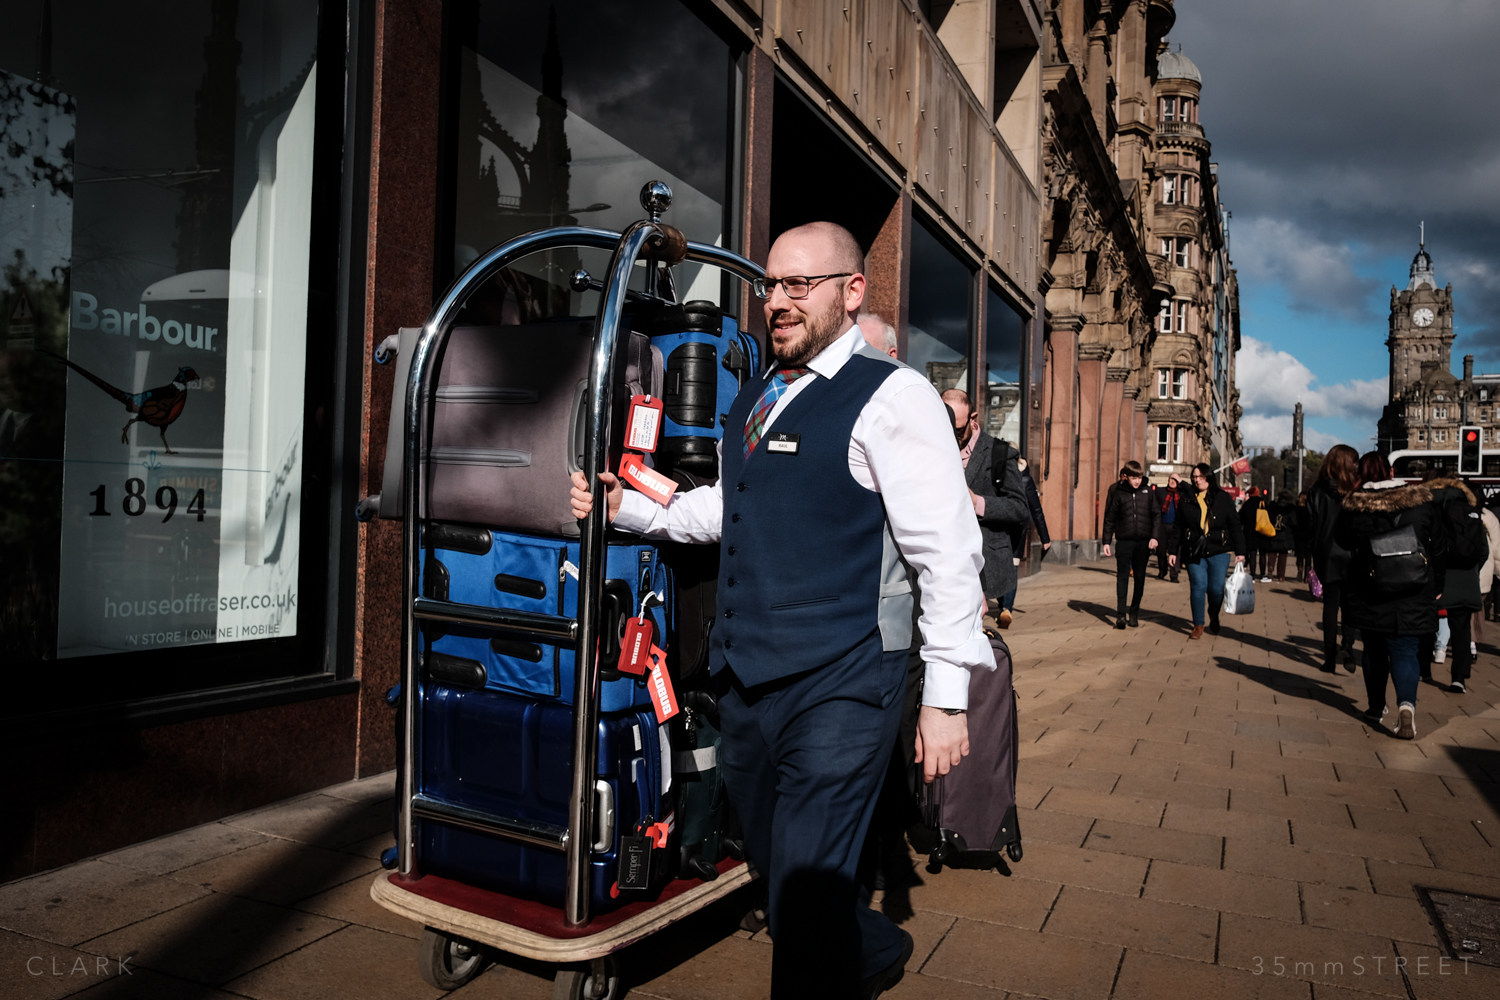 026_35mmStreet-Edinburgh-Street-Photography-20190404.jpg